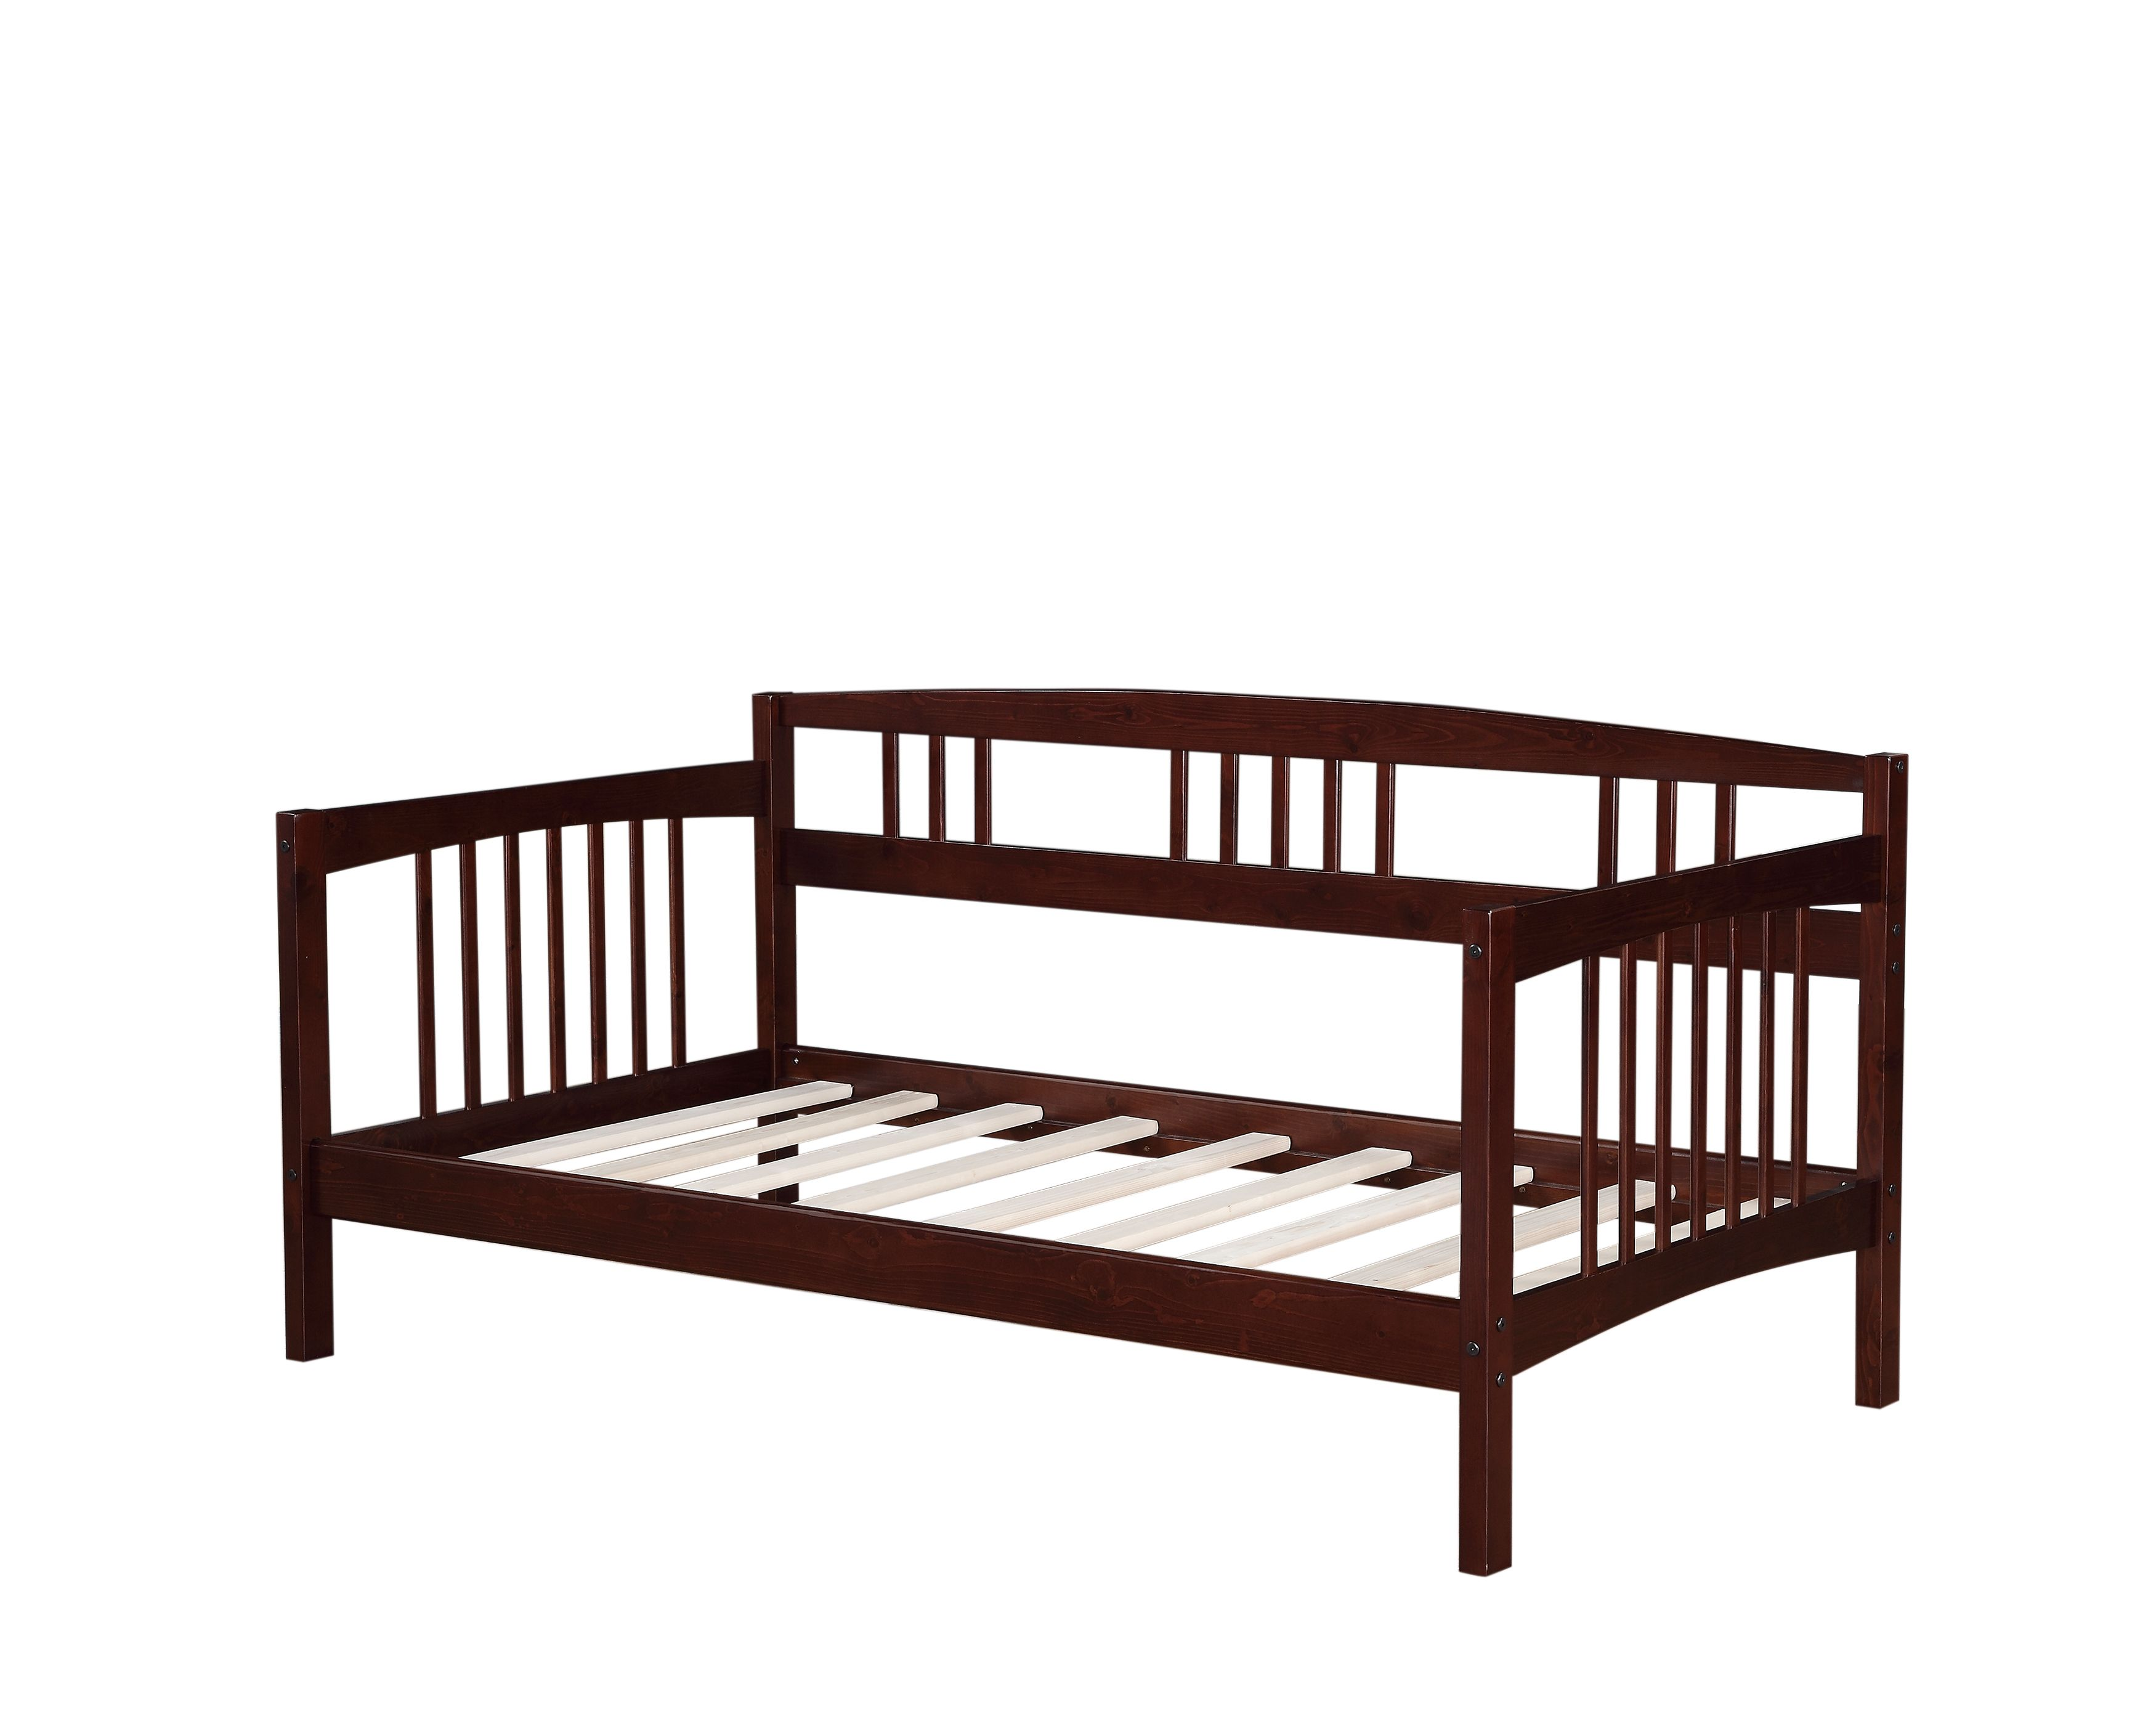 Kmart Deals On Furniture Toys Clothes Tools Tablets Day Bed